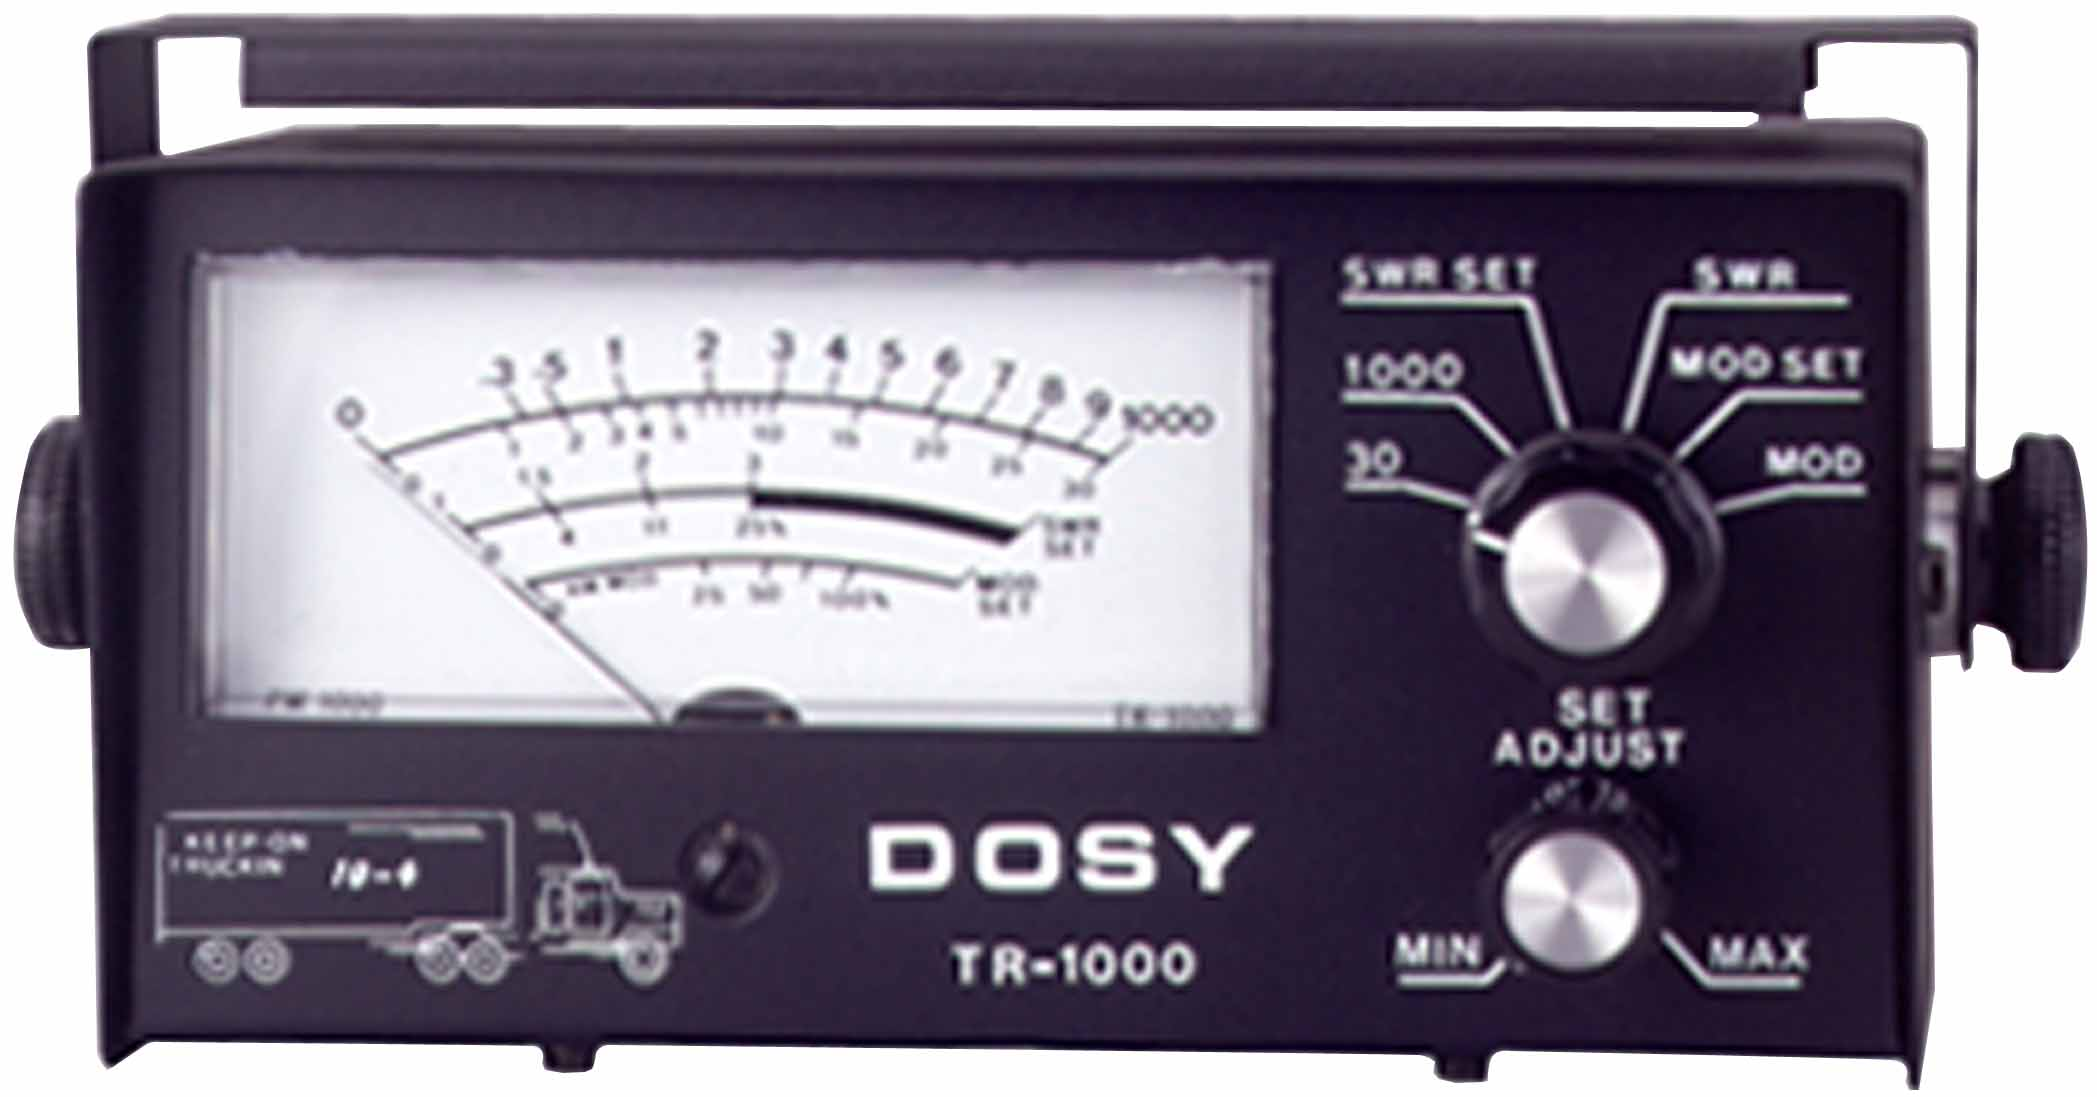 TR1000 - Dosy 1000 Watt In Line Mobile Swr/Watt Meter